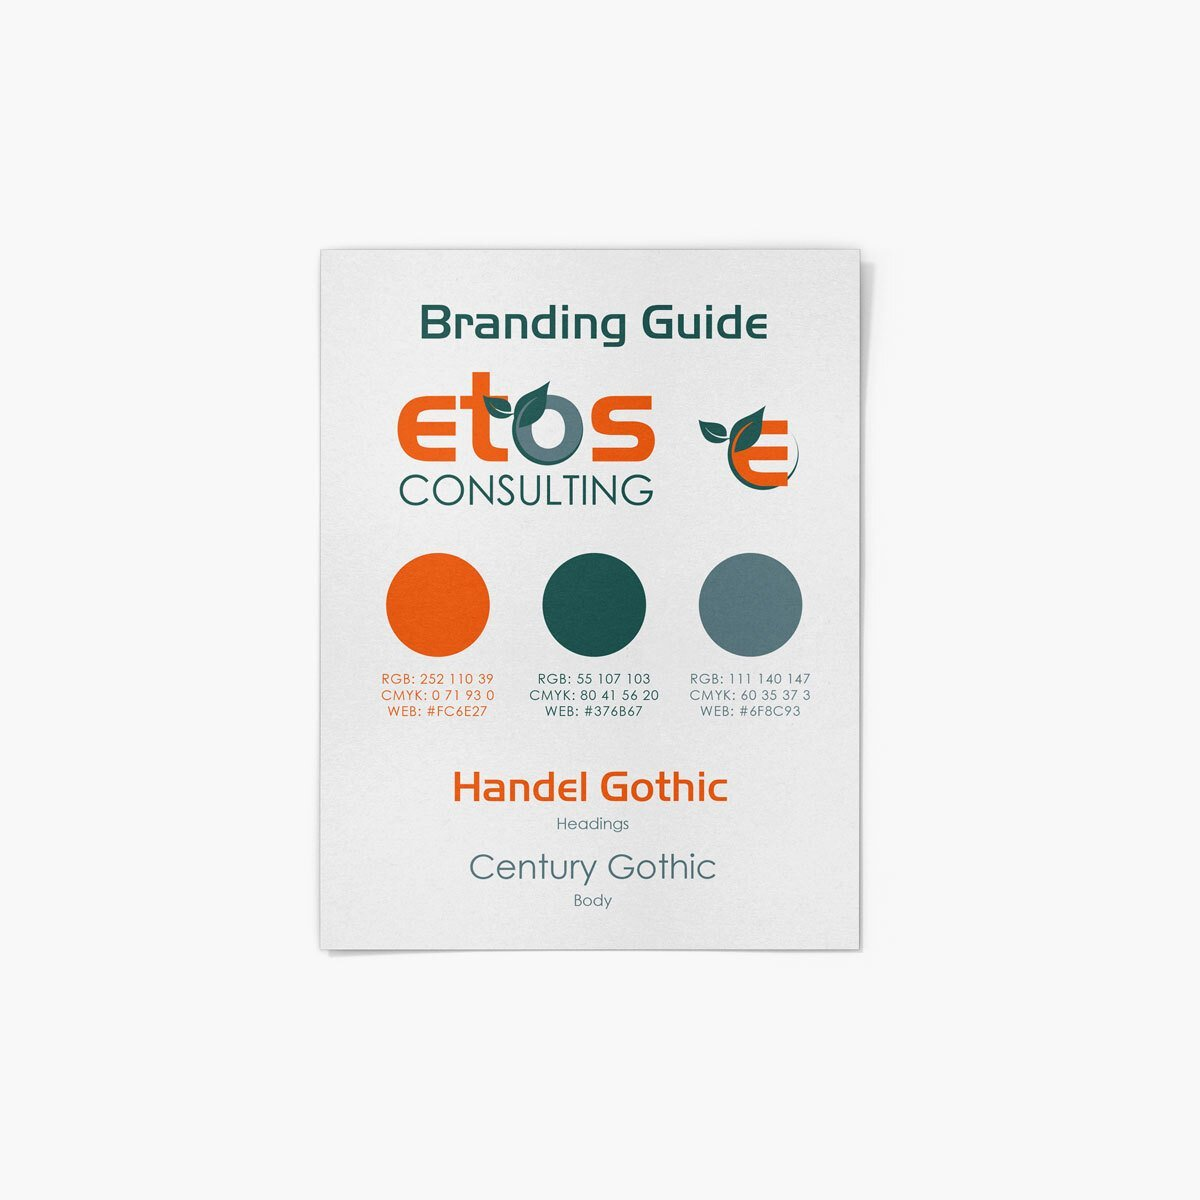 ETOS Consulting Brand Design by BrandSwan, a brand design company